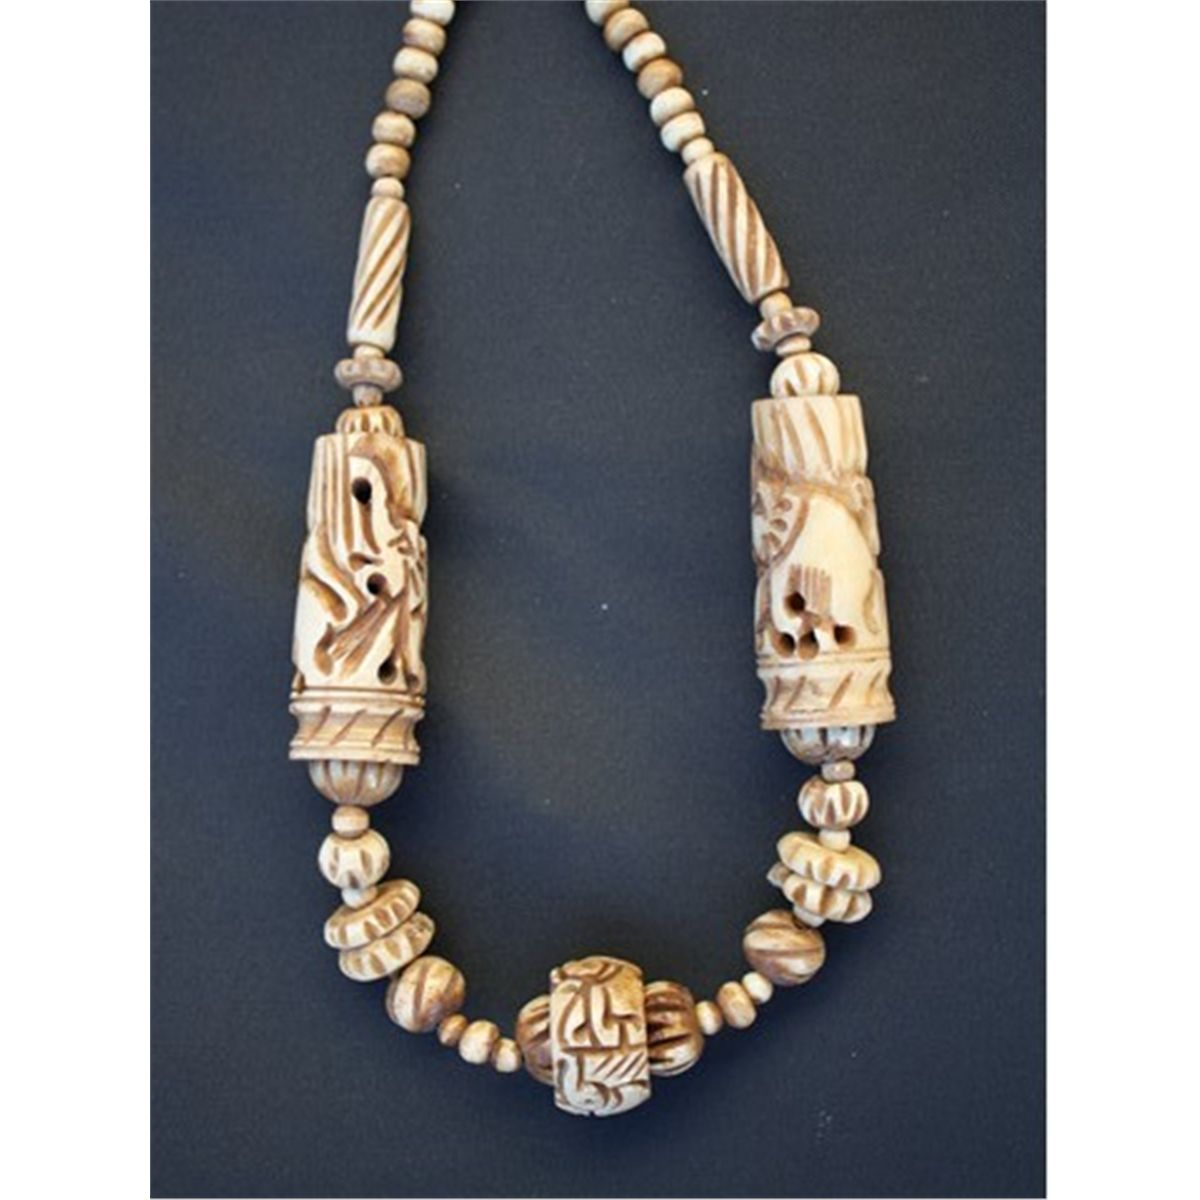 Mwf1539 Tibetan Intricately Carved Yak Bone Beaded Necklace Length Approx 26